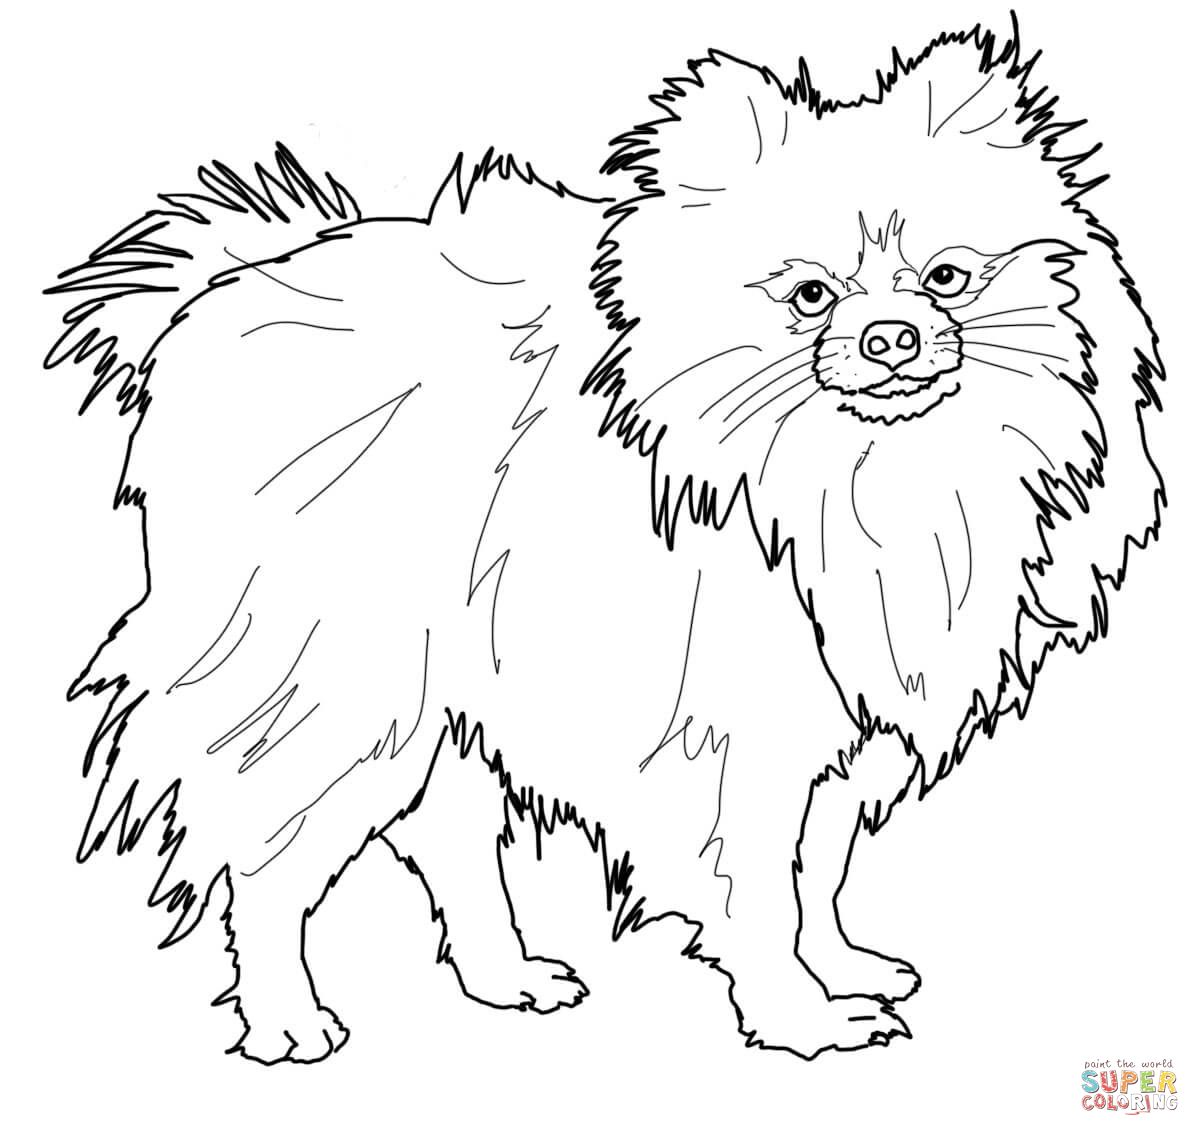 chihuahua coloring pages - Bing Images | Coloring Pages | Pinterest ...